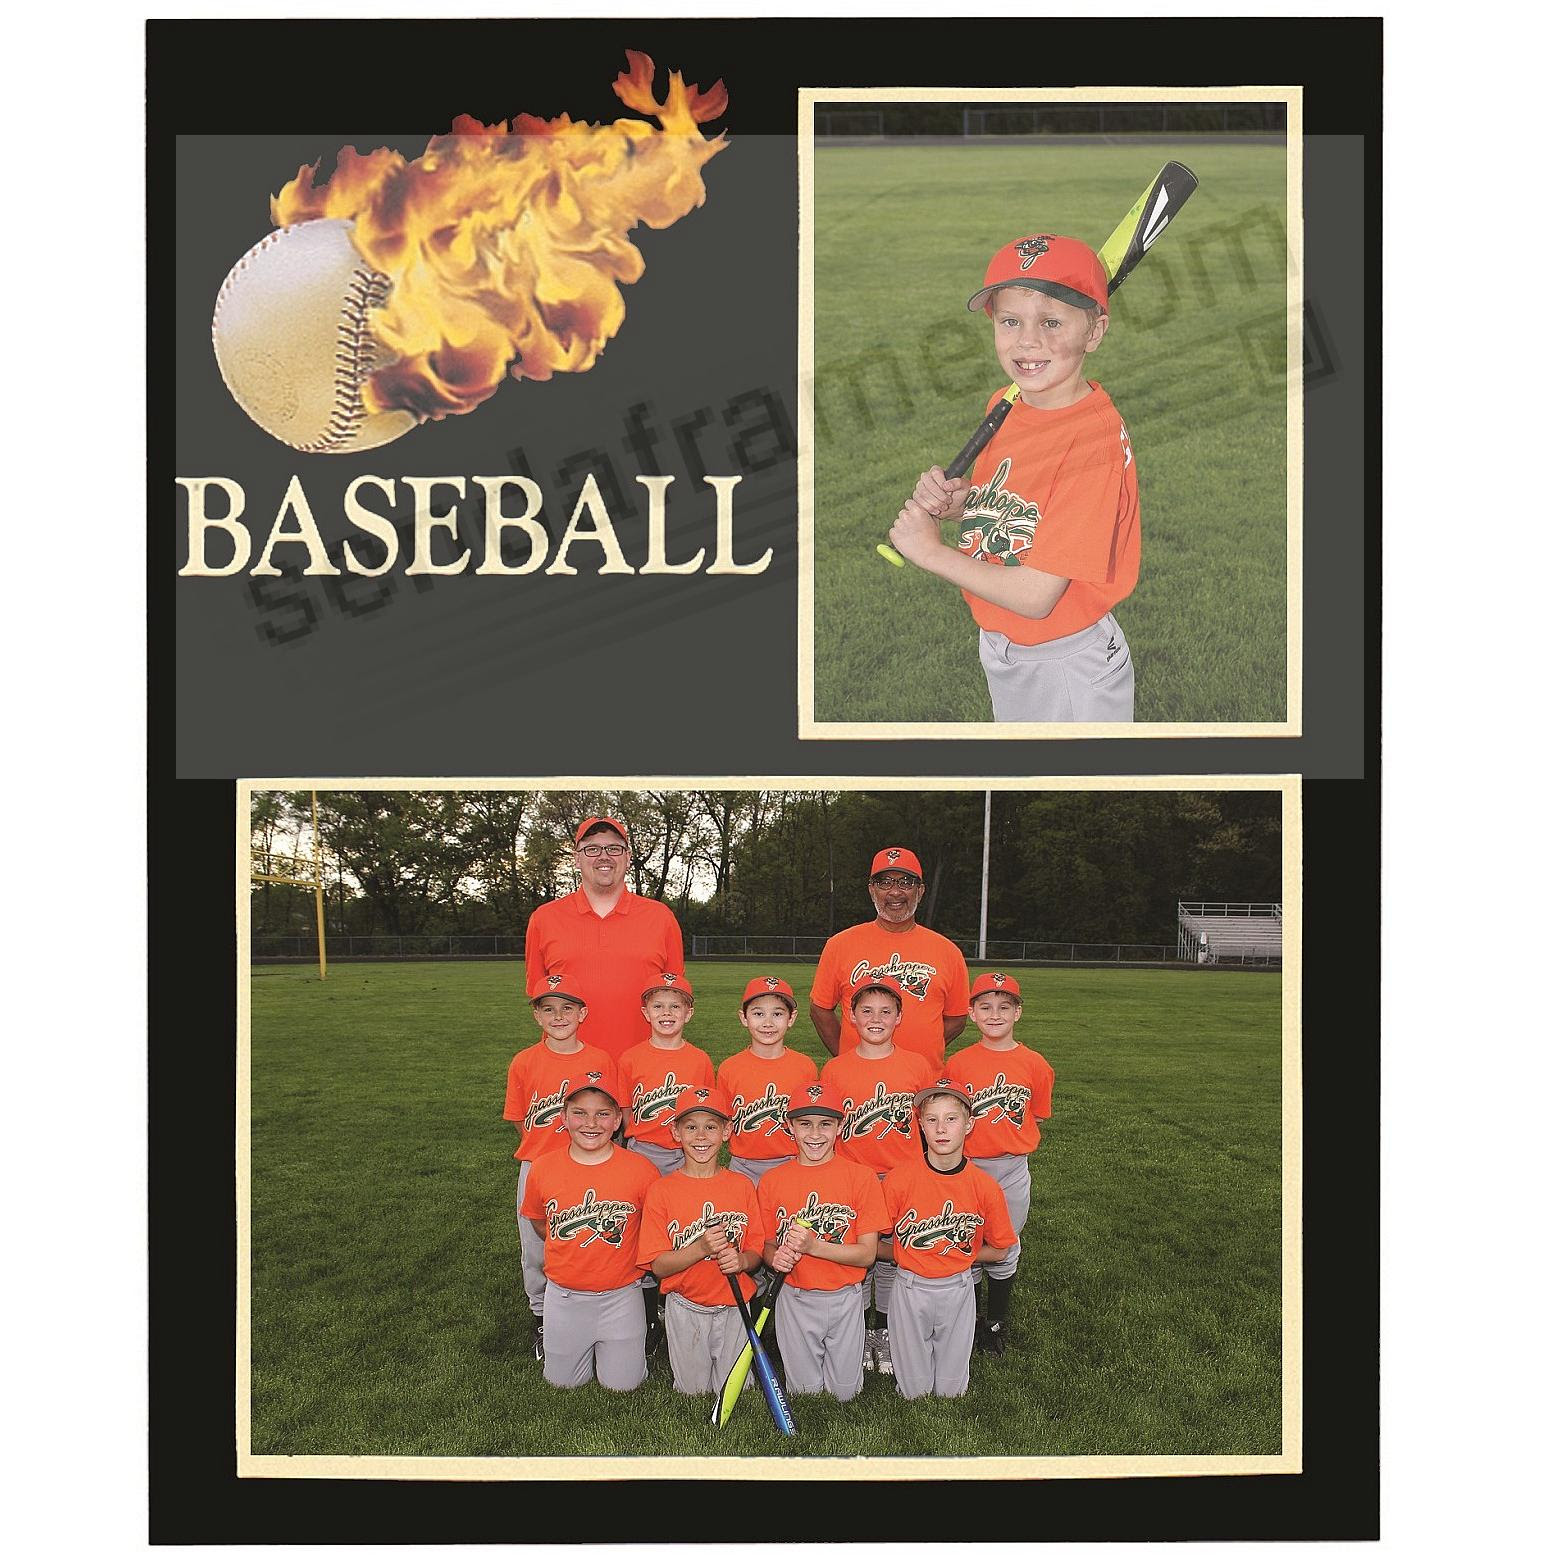 Baseball Playerteam 7x53½x5 Memory Mates Cardstock Double Photo